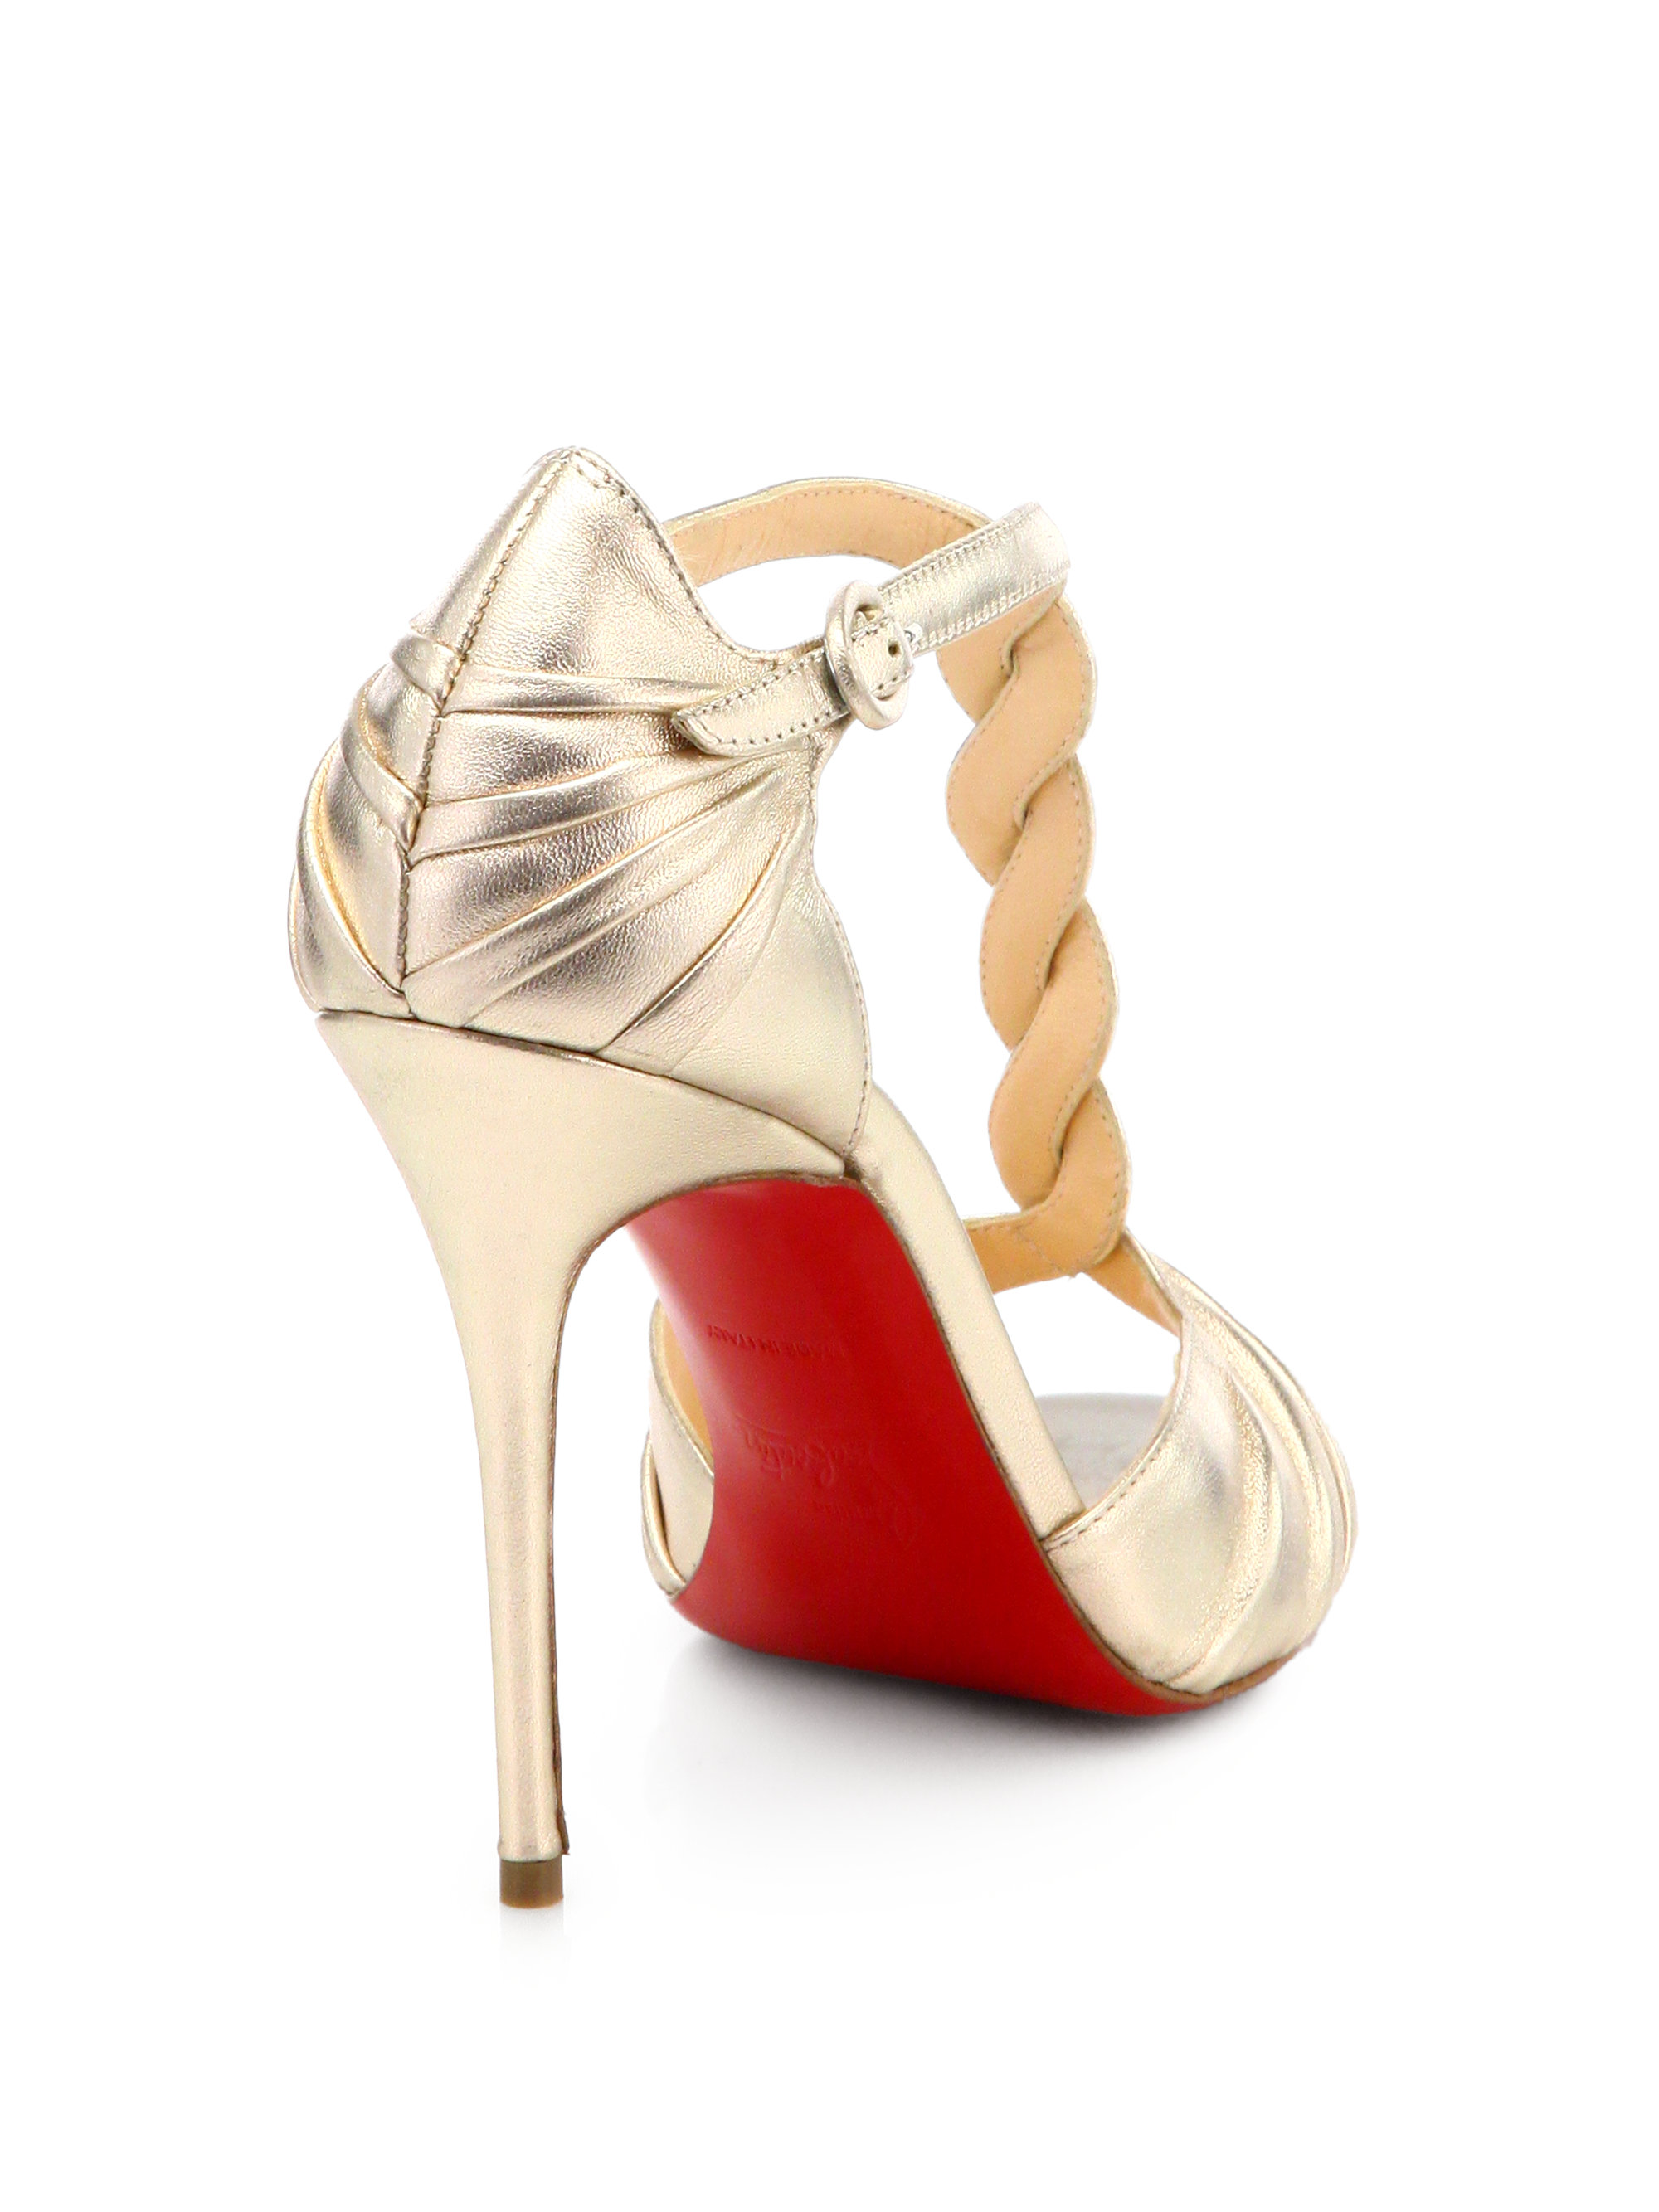 replica christian louboutin shoes - christian louboutin milla 100 metallic leather sandals, replica ...